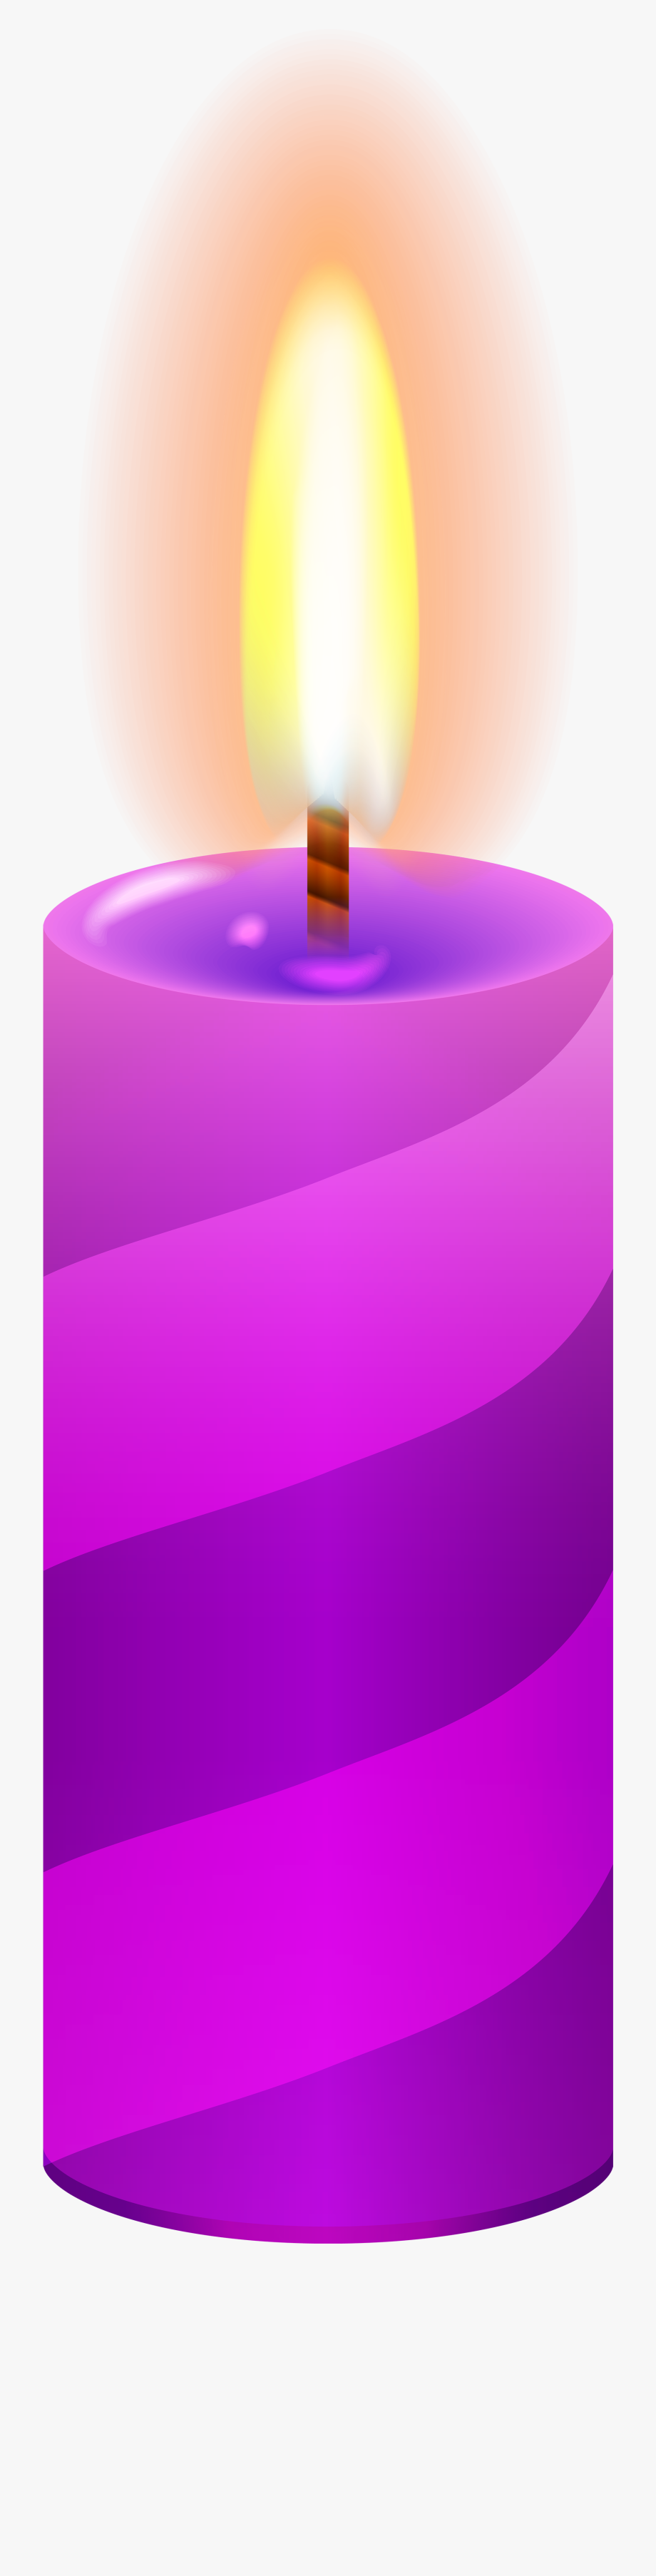 Candle Purple Png Clip Art.